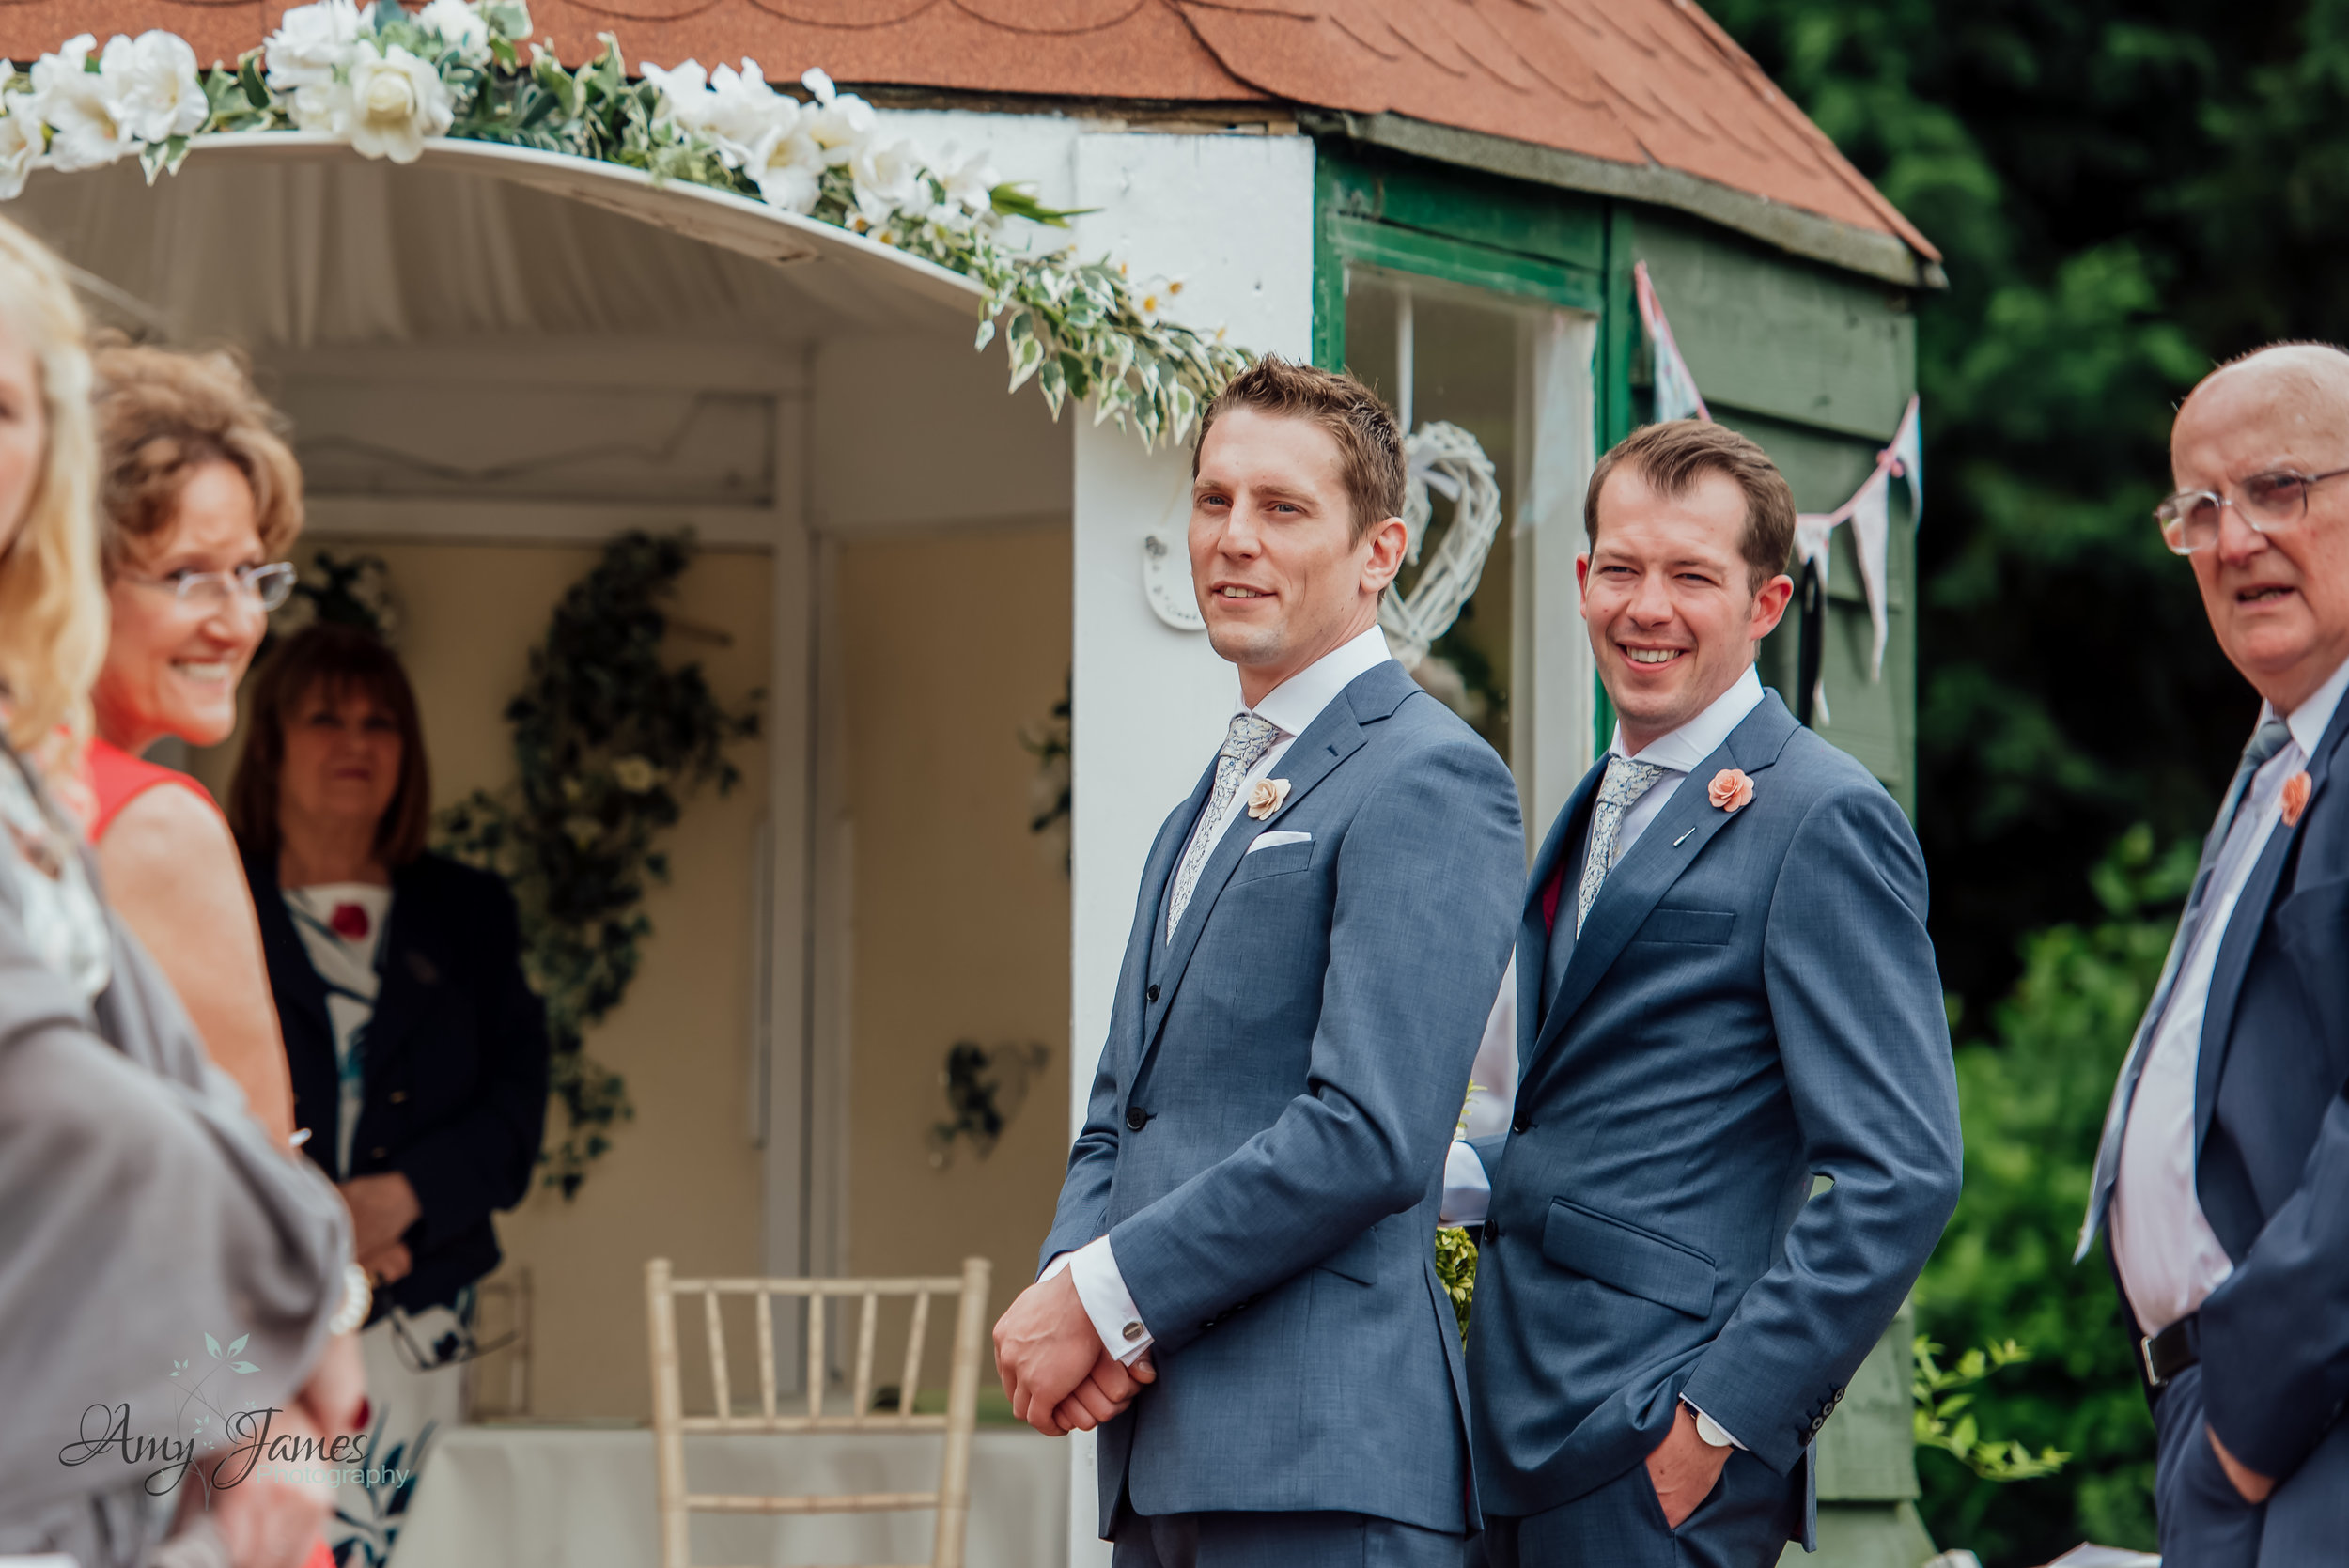 outdoor garden wedding ceremony photograph by Amy James Photography at Taplins Place